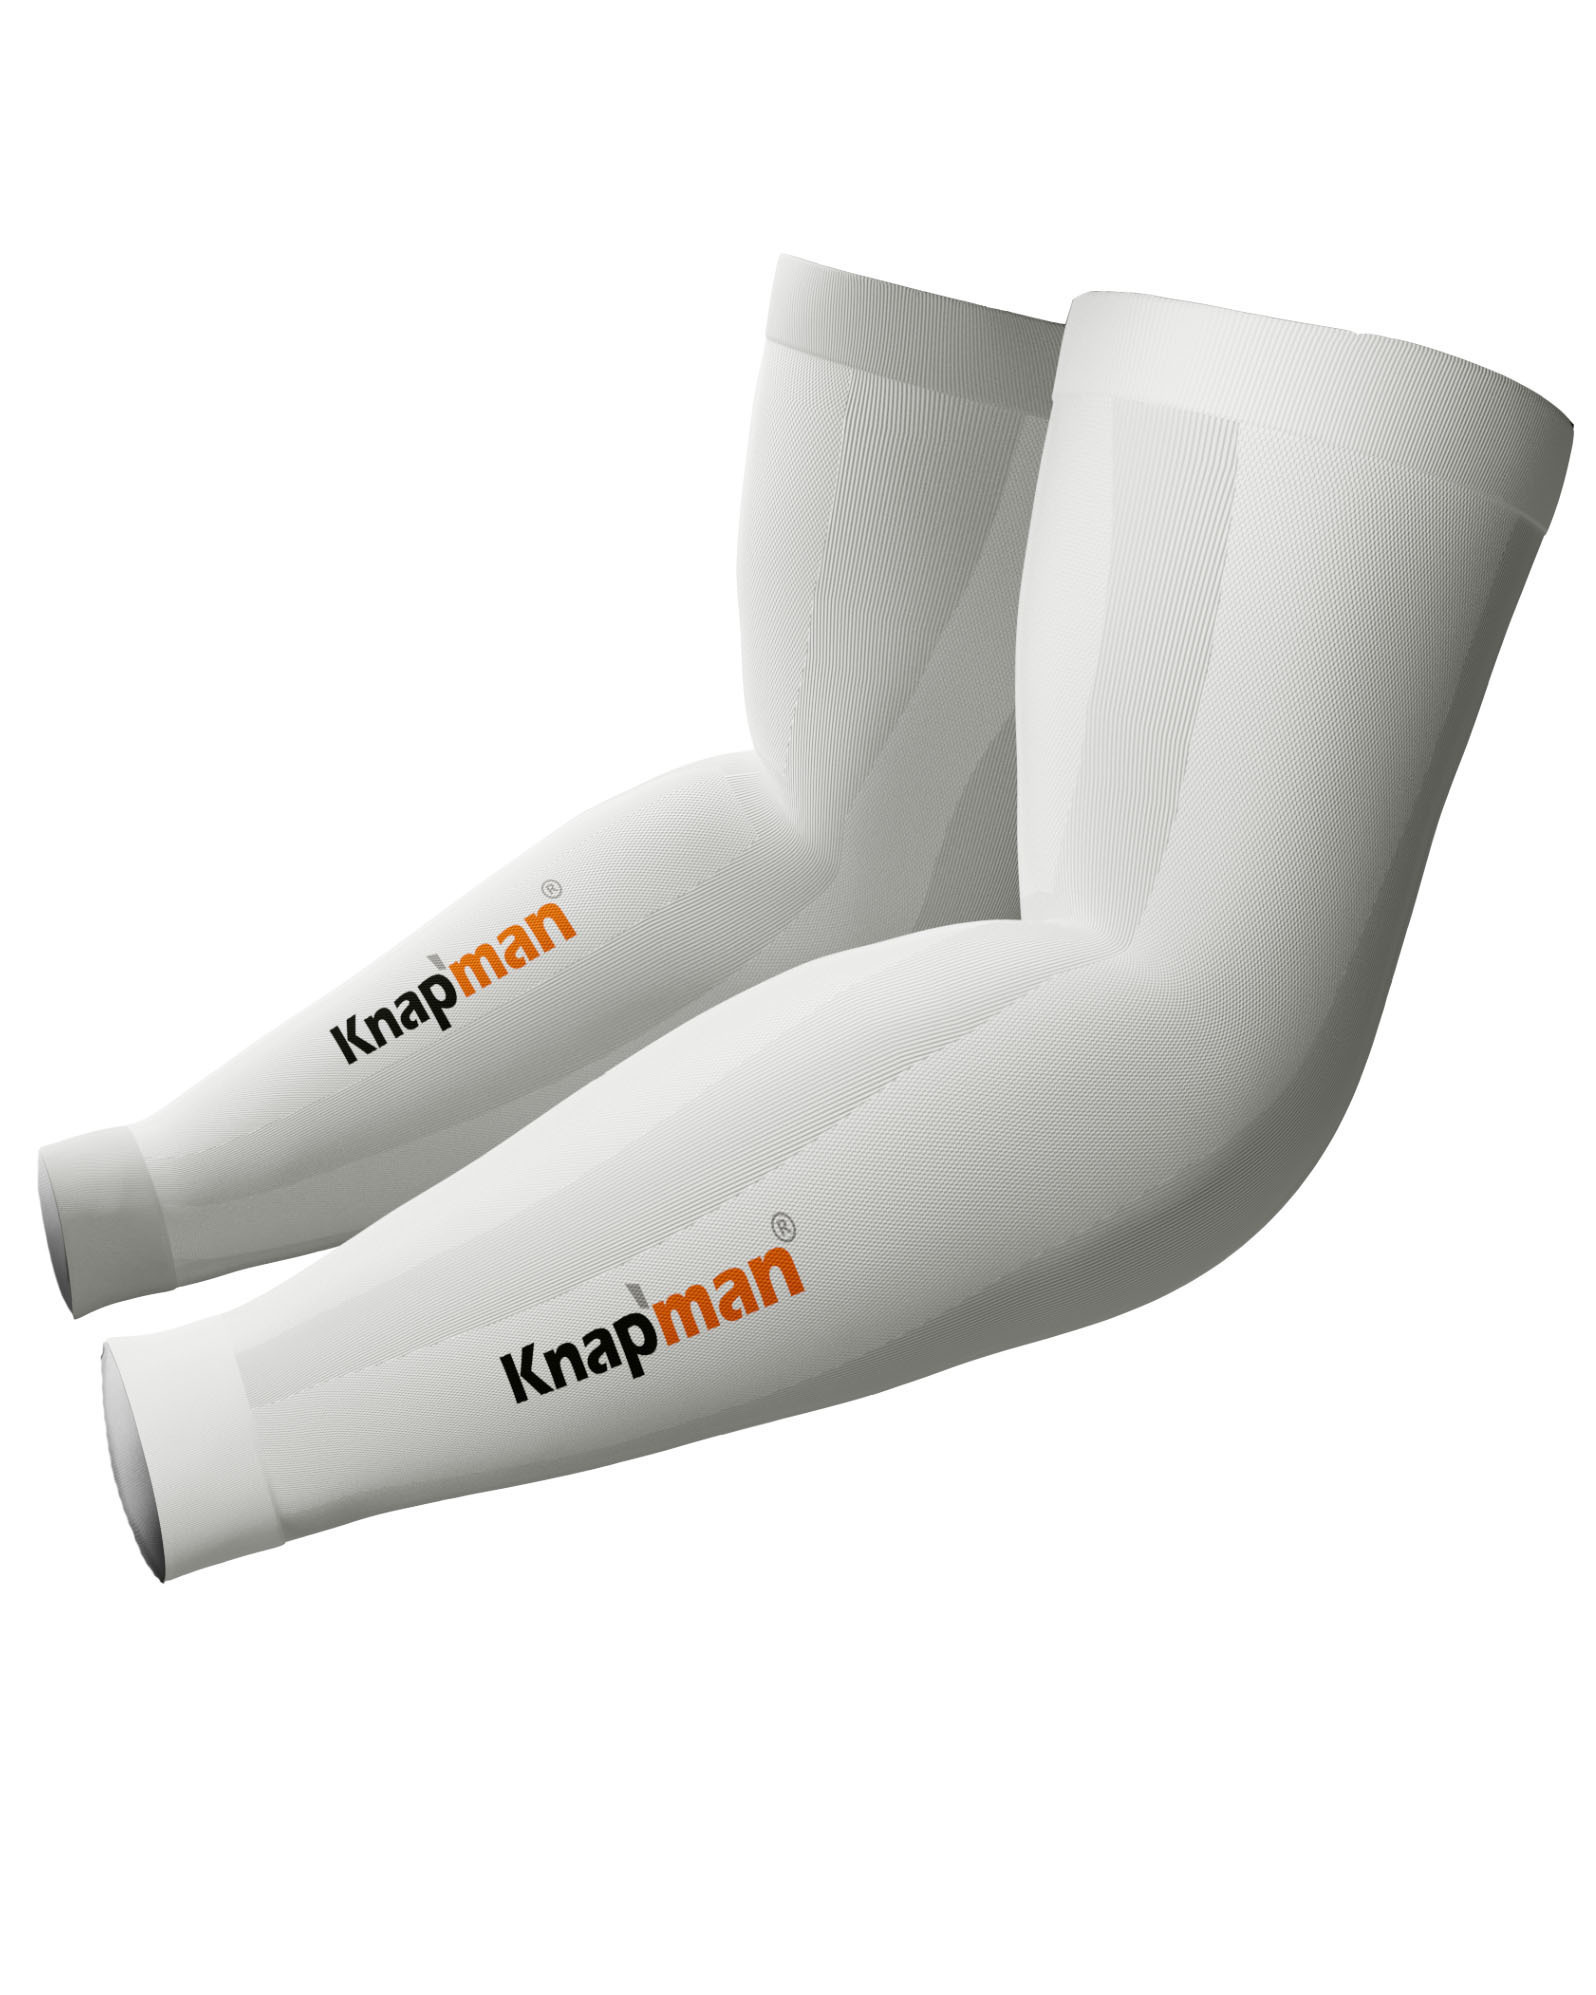 Knapman Zoned Compression Arm Sleeves 45% white